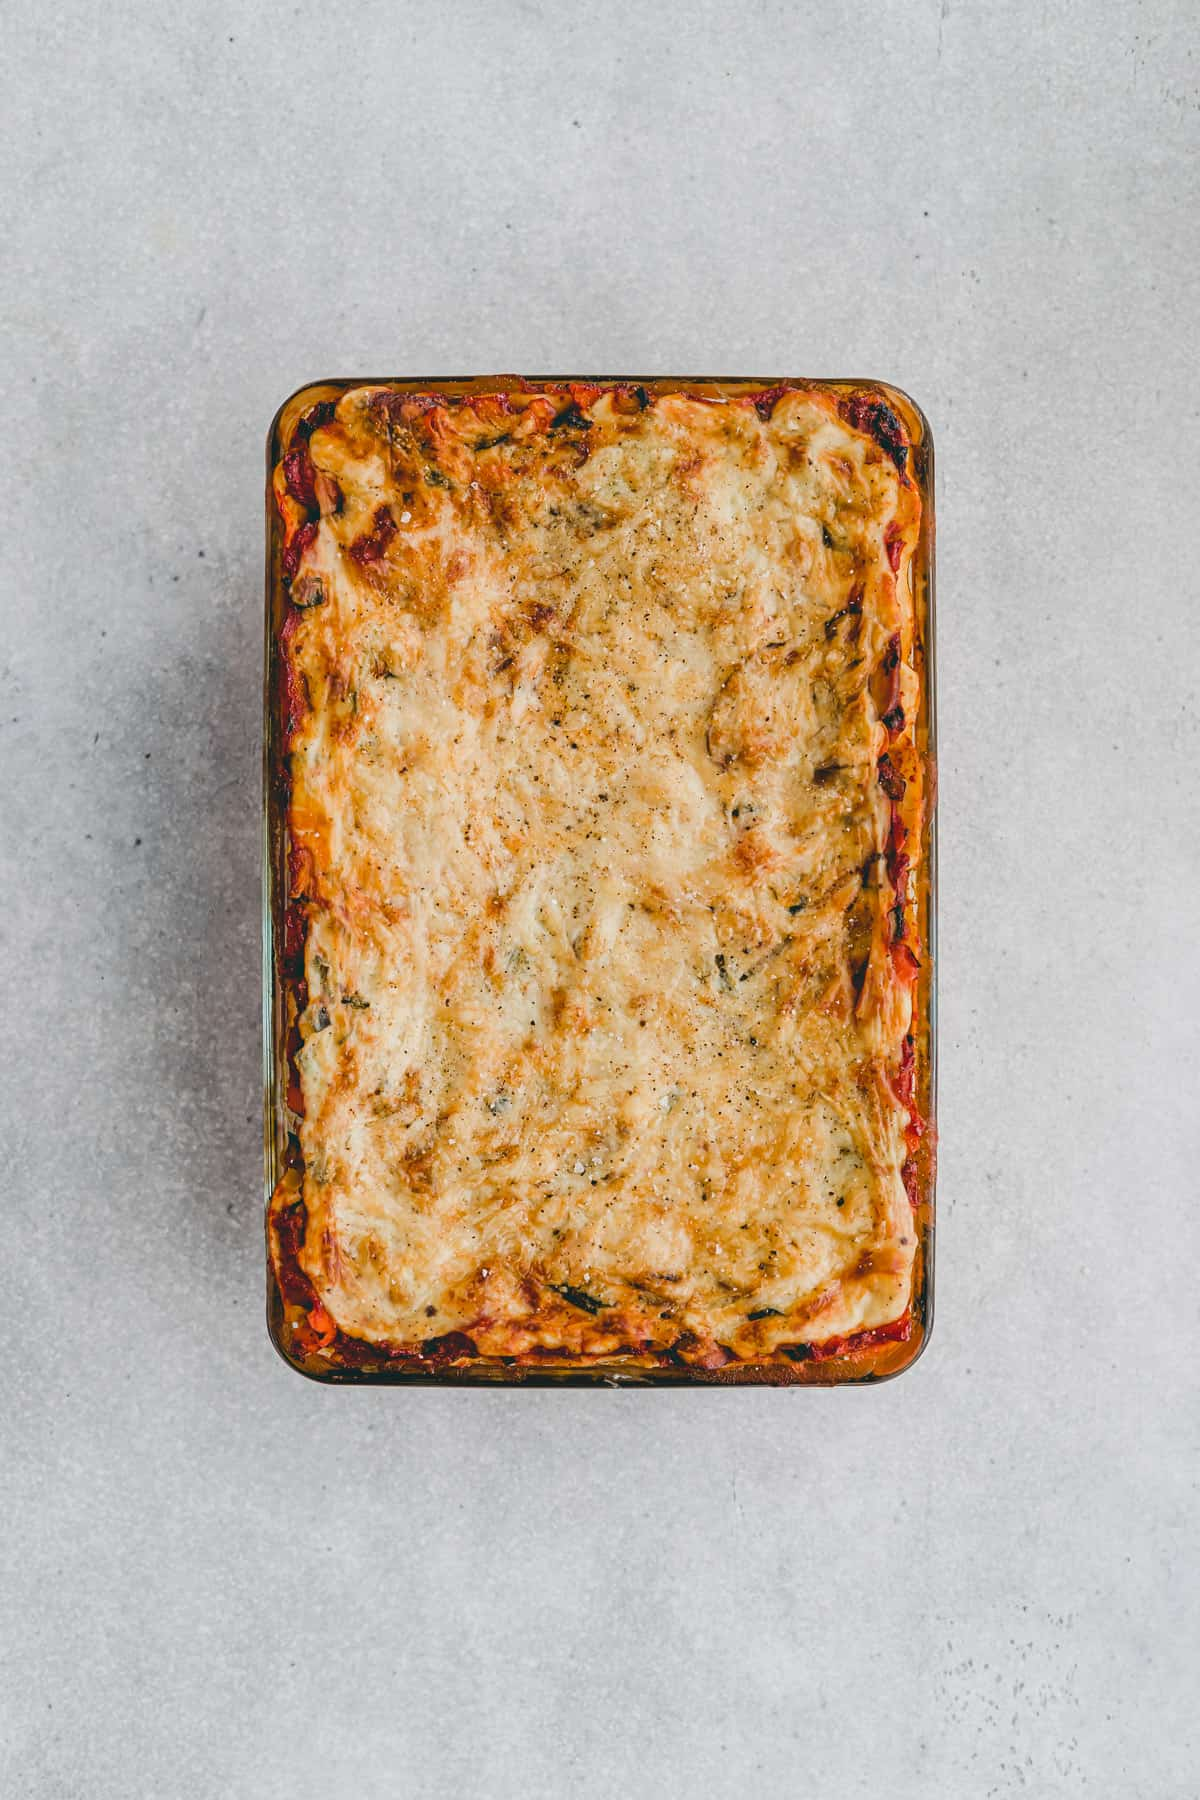 baked vegetable lasagna with white sauce